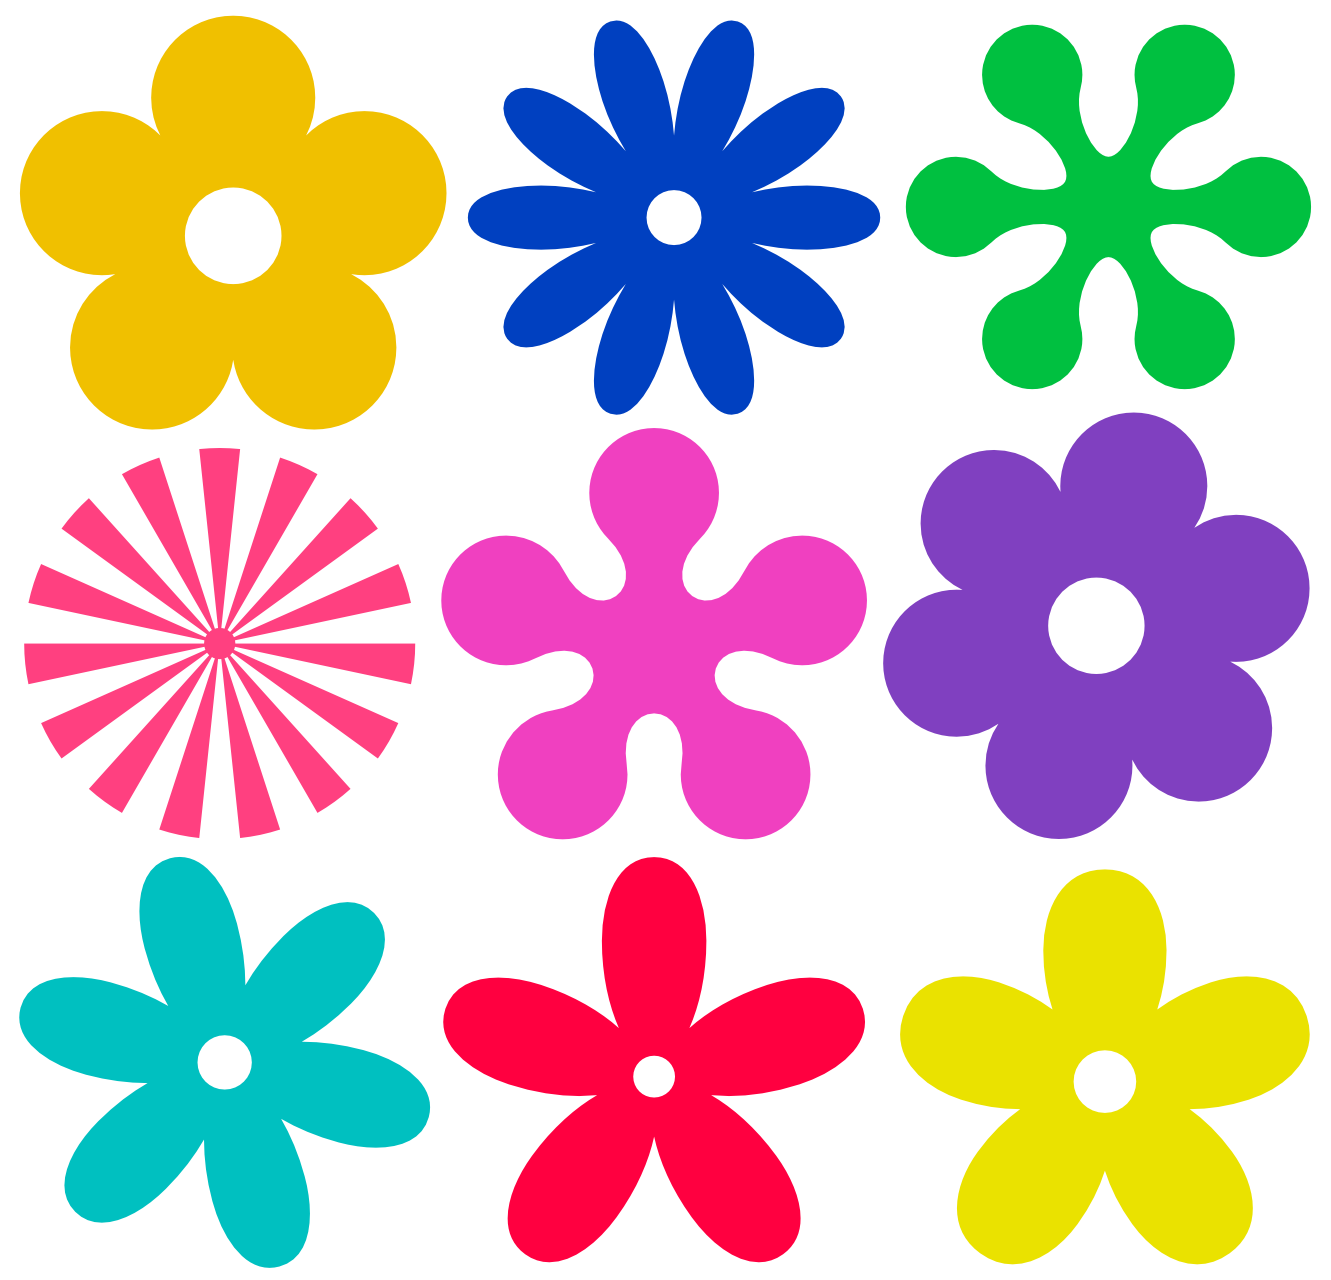 Download Flowers Vectors PNG images transparent gallery. Advertisement - Flowers Vectors PNG